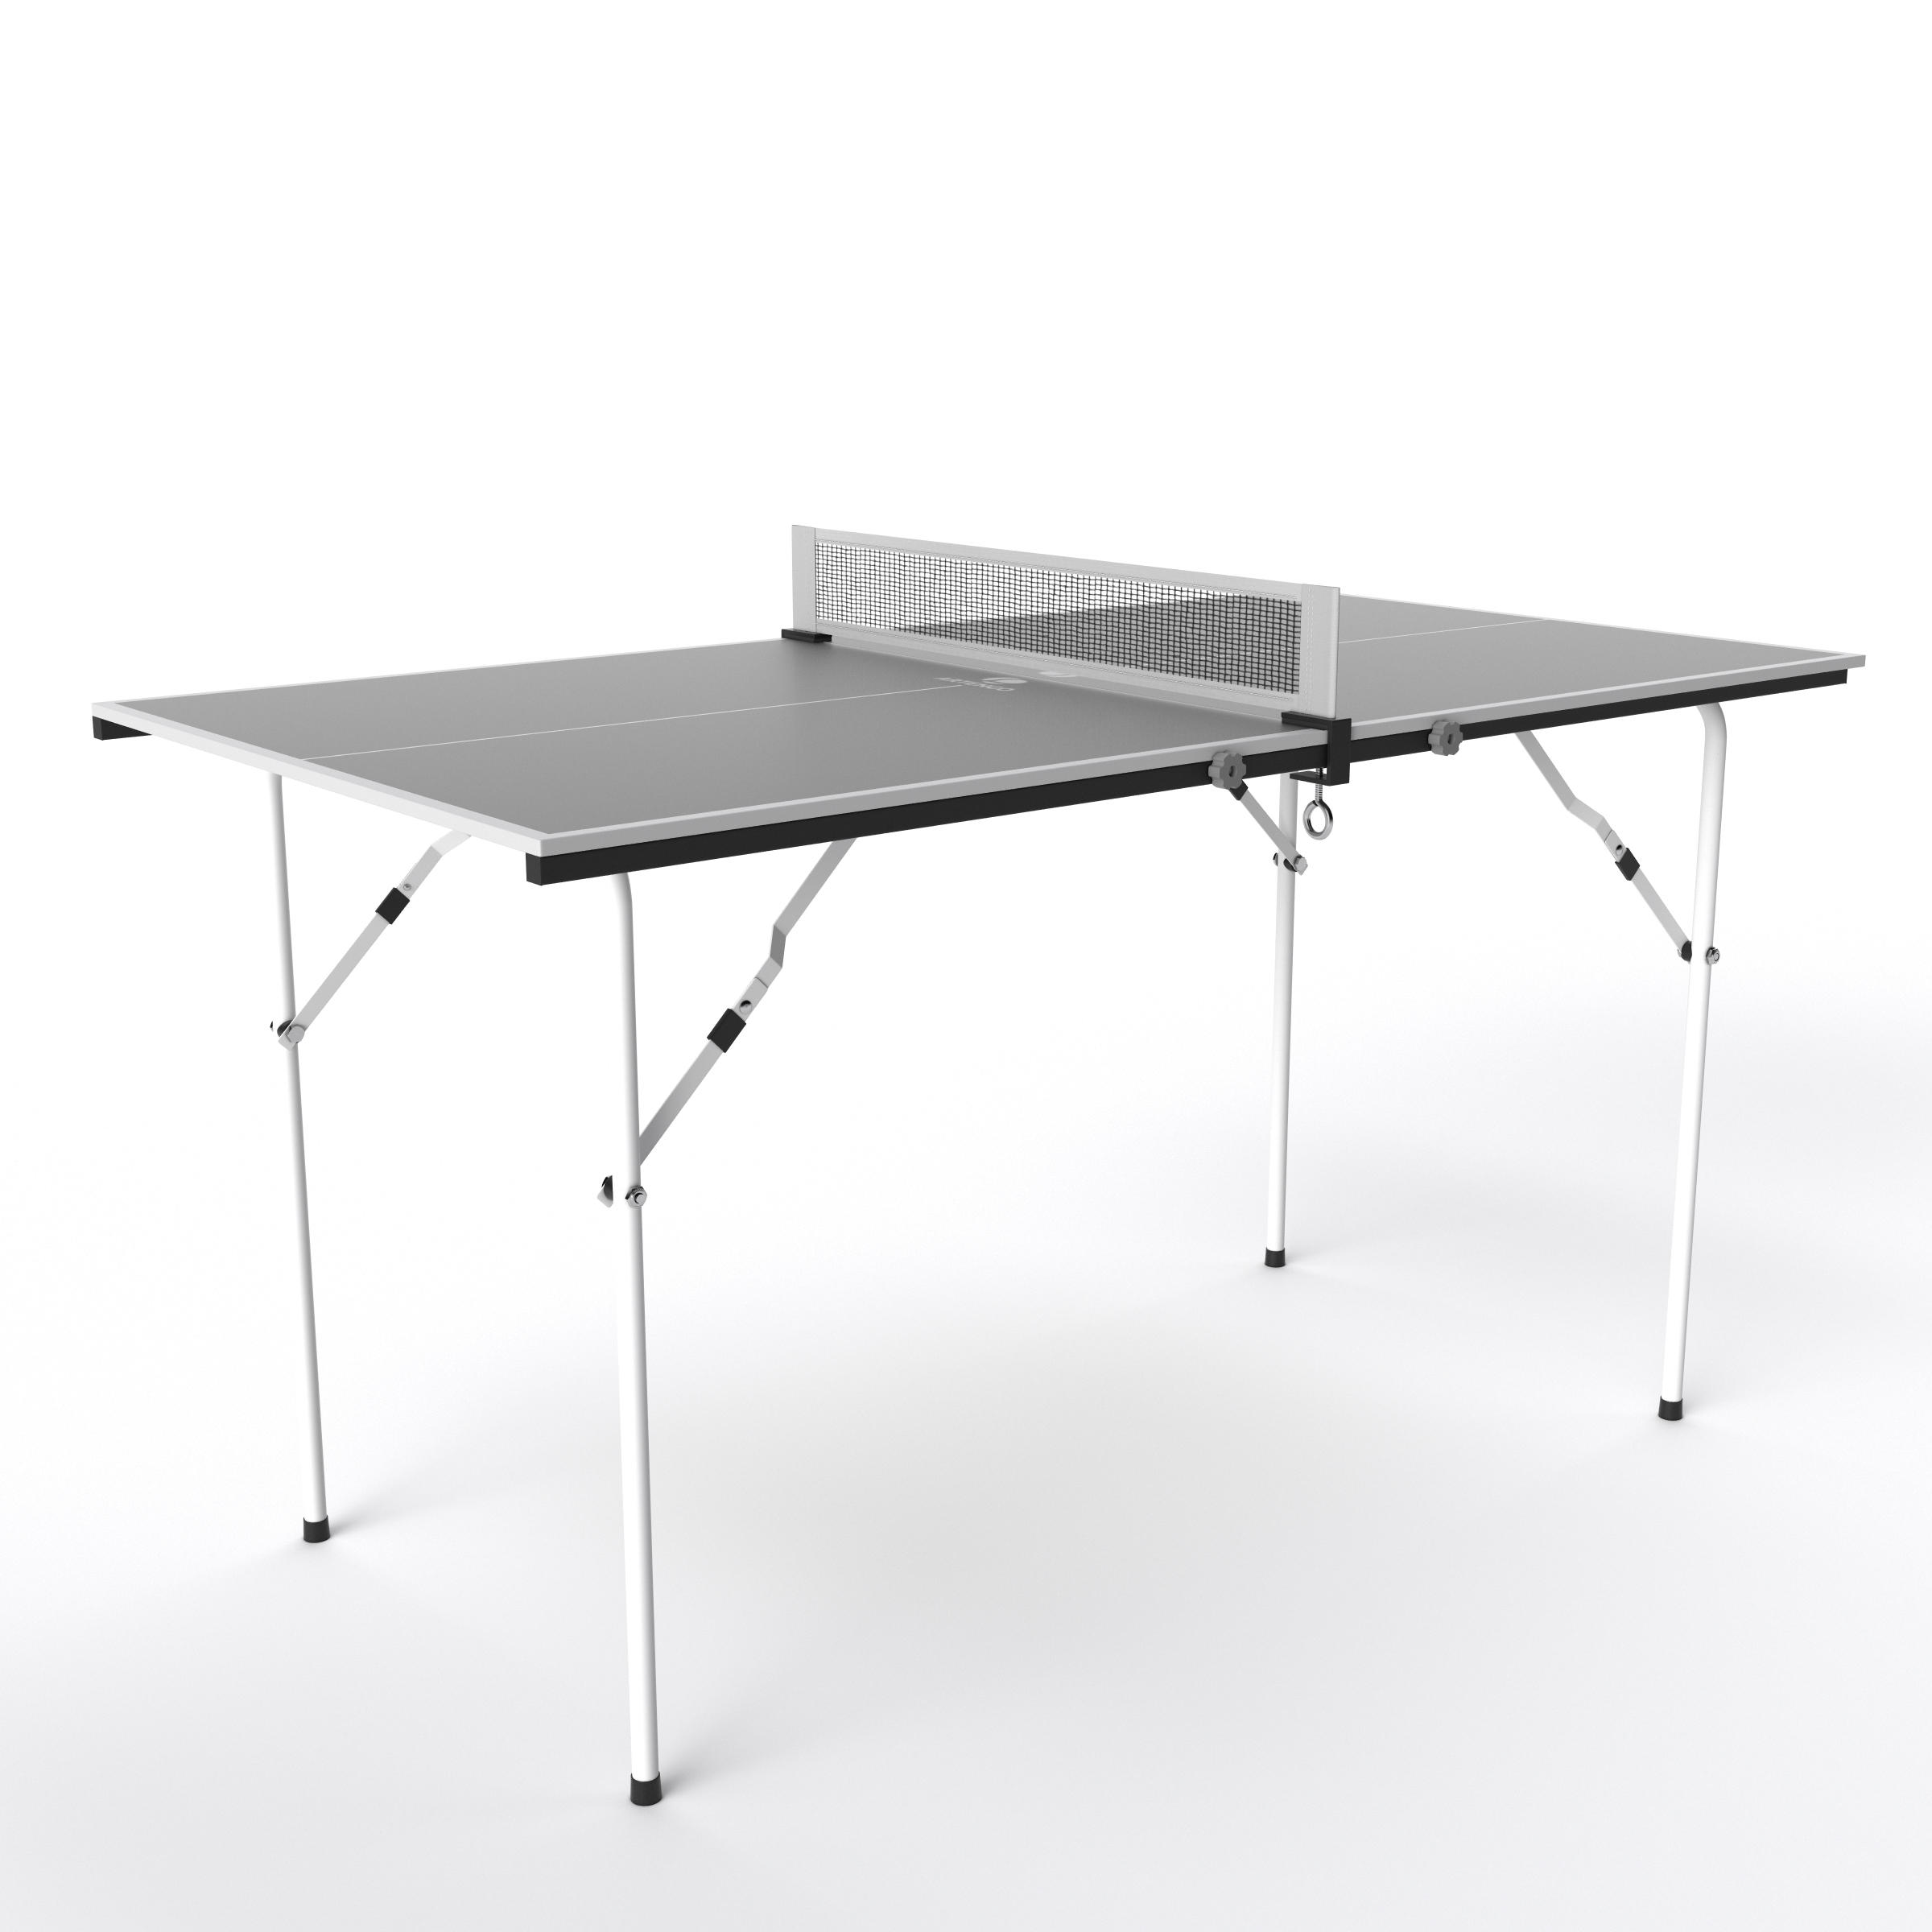 Table de tennis de table PPT 500 S intérieure